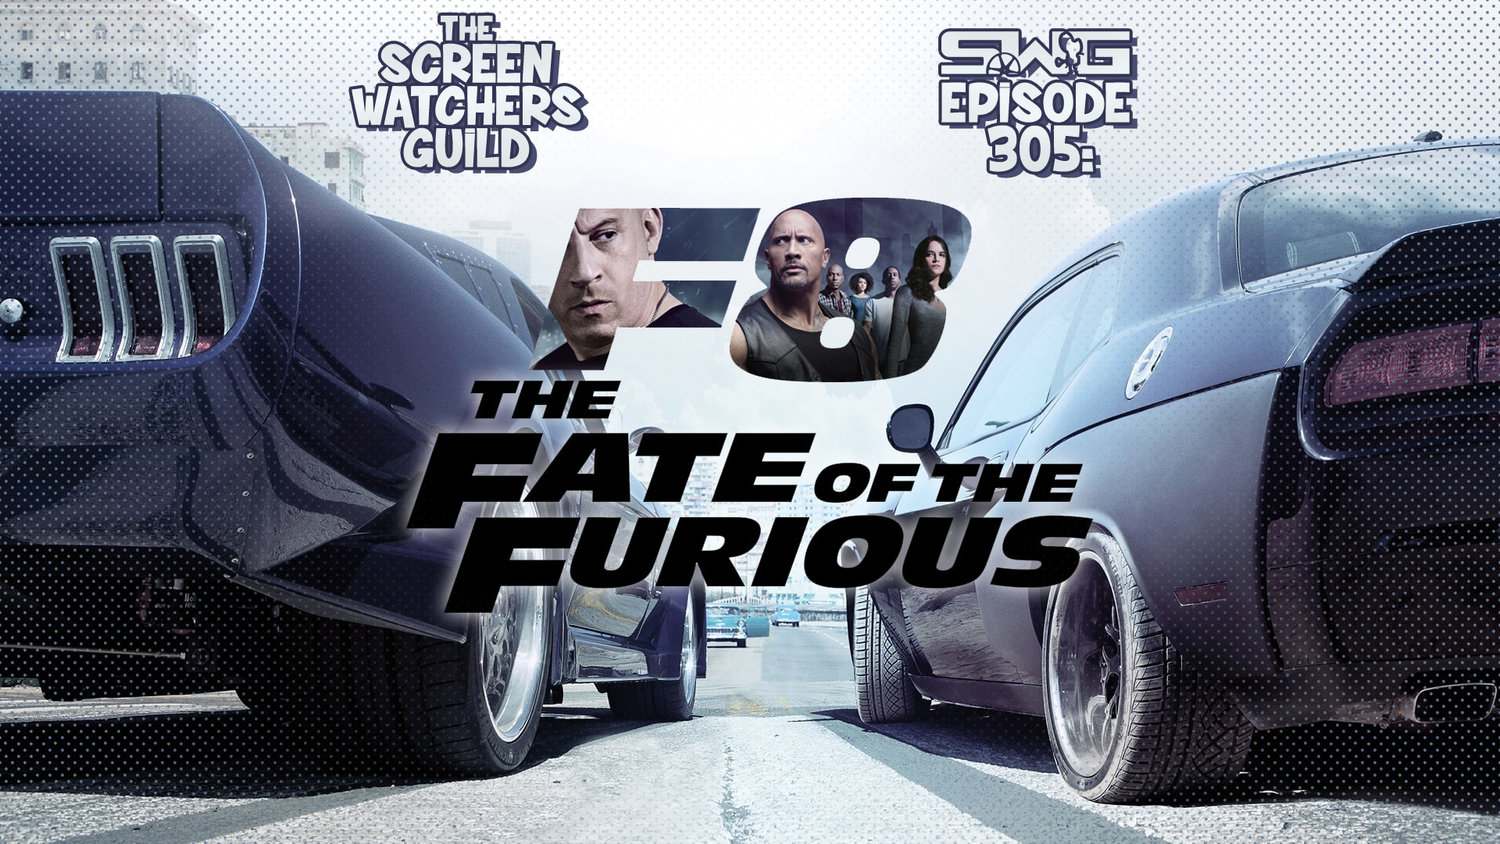 Screen Watchers Guild: Ep. 305 — The Fate of the Furious